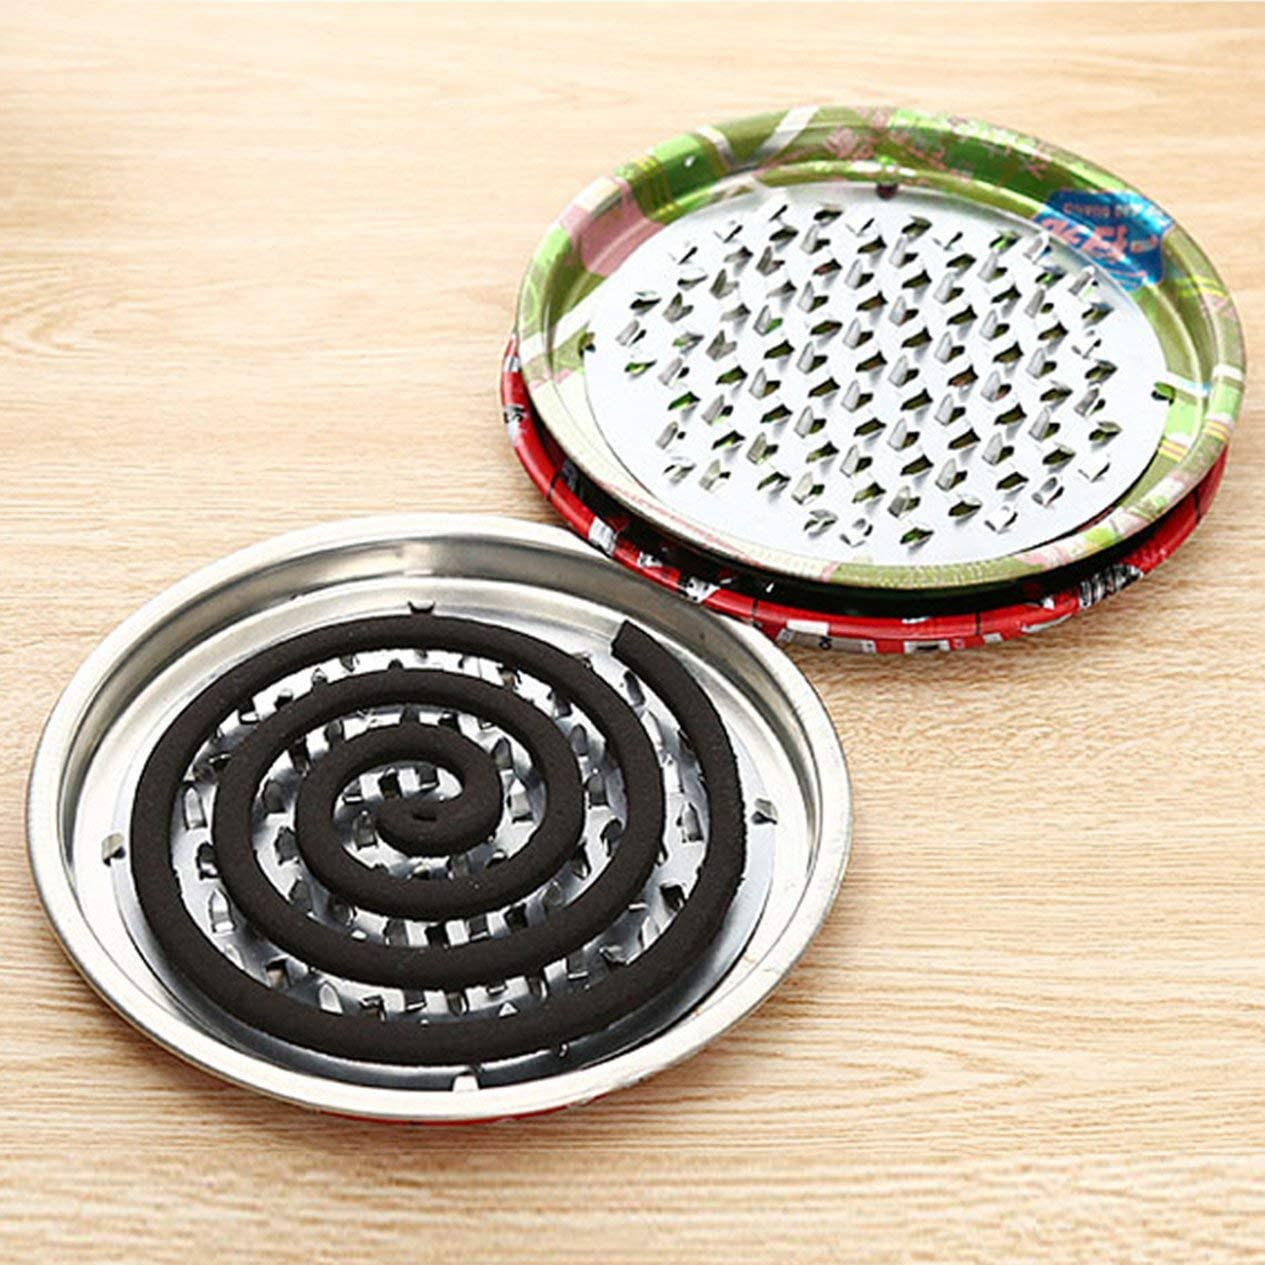 Camco 51063 Mosquito Coil Holder